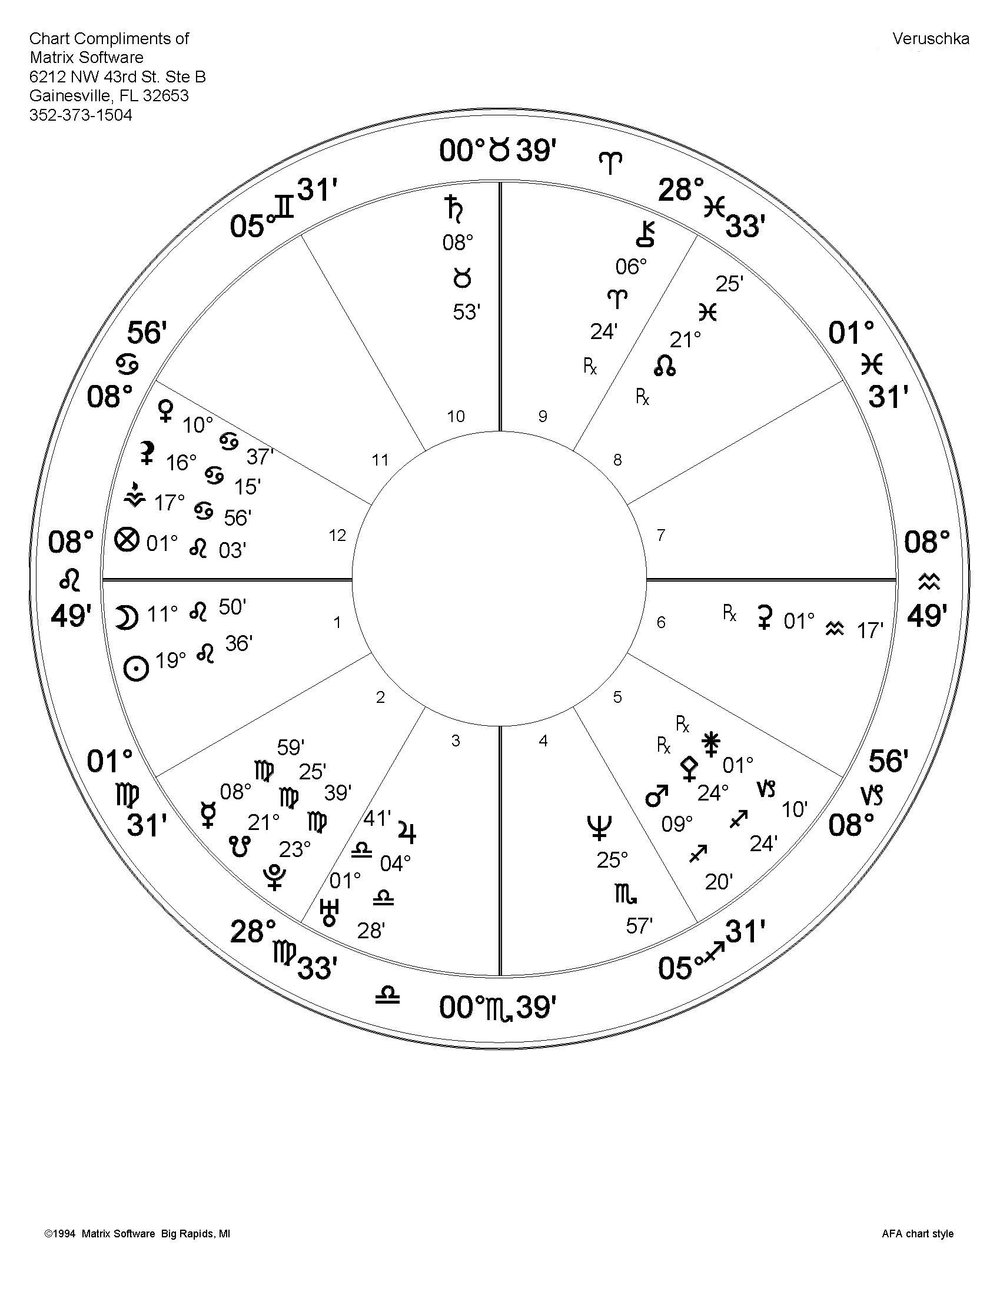 Natal chart for Veruschka Normandeau